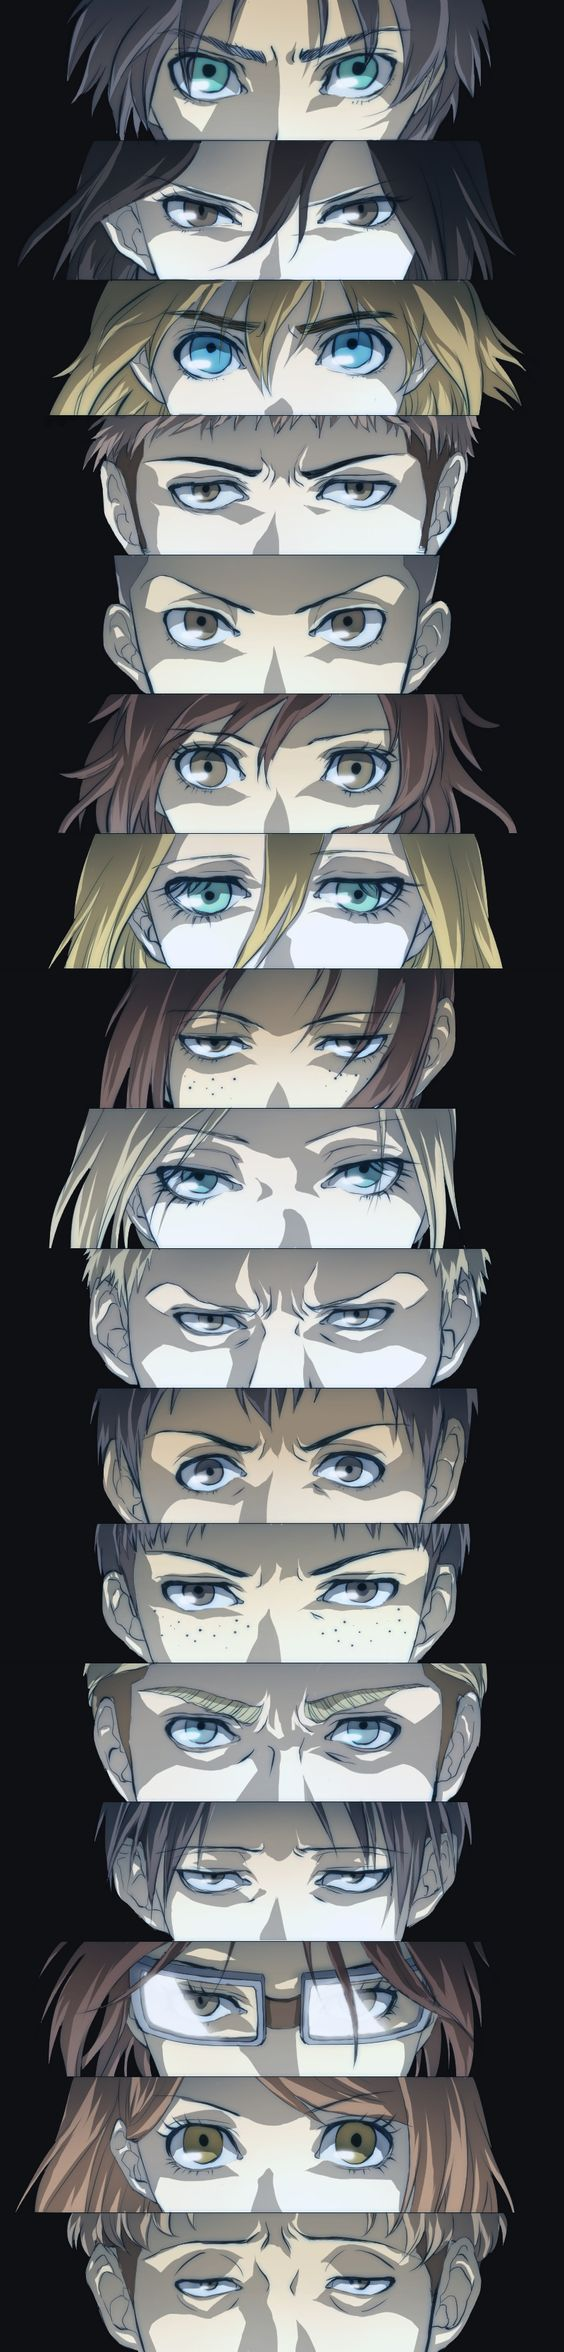 """Eyes of """"Attack on Titan"""" ~~ Another mega-hit that I hadn't watched. Now I've started watching it and I am becoming OBSESSED!"""